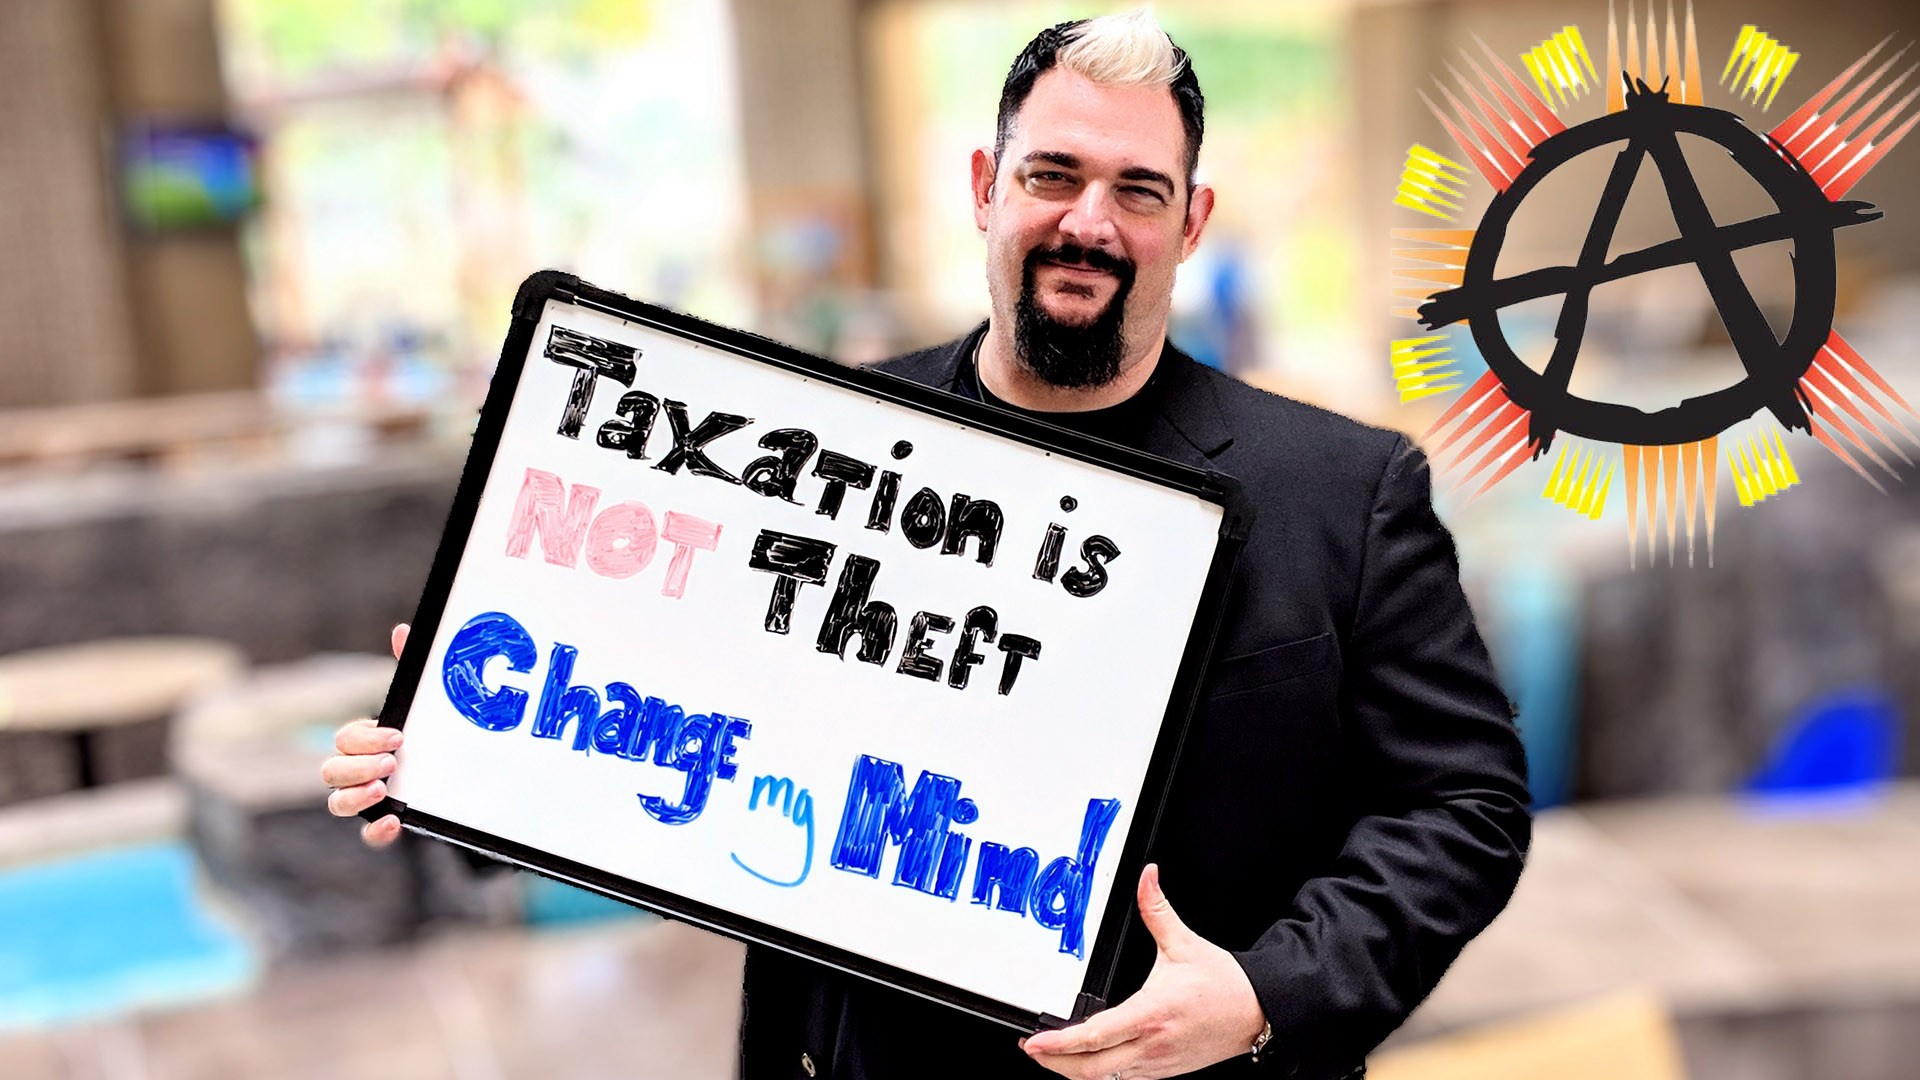 Change My Mind! Taxation is NOT Theft ft. Larken Rose